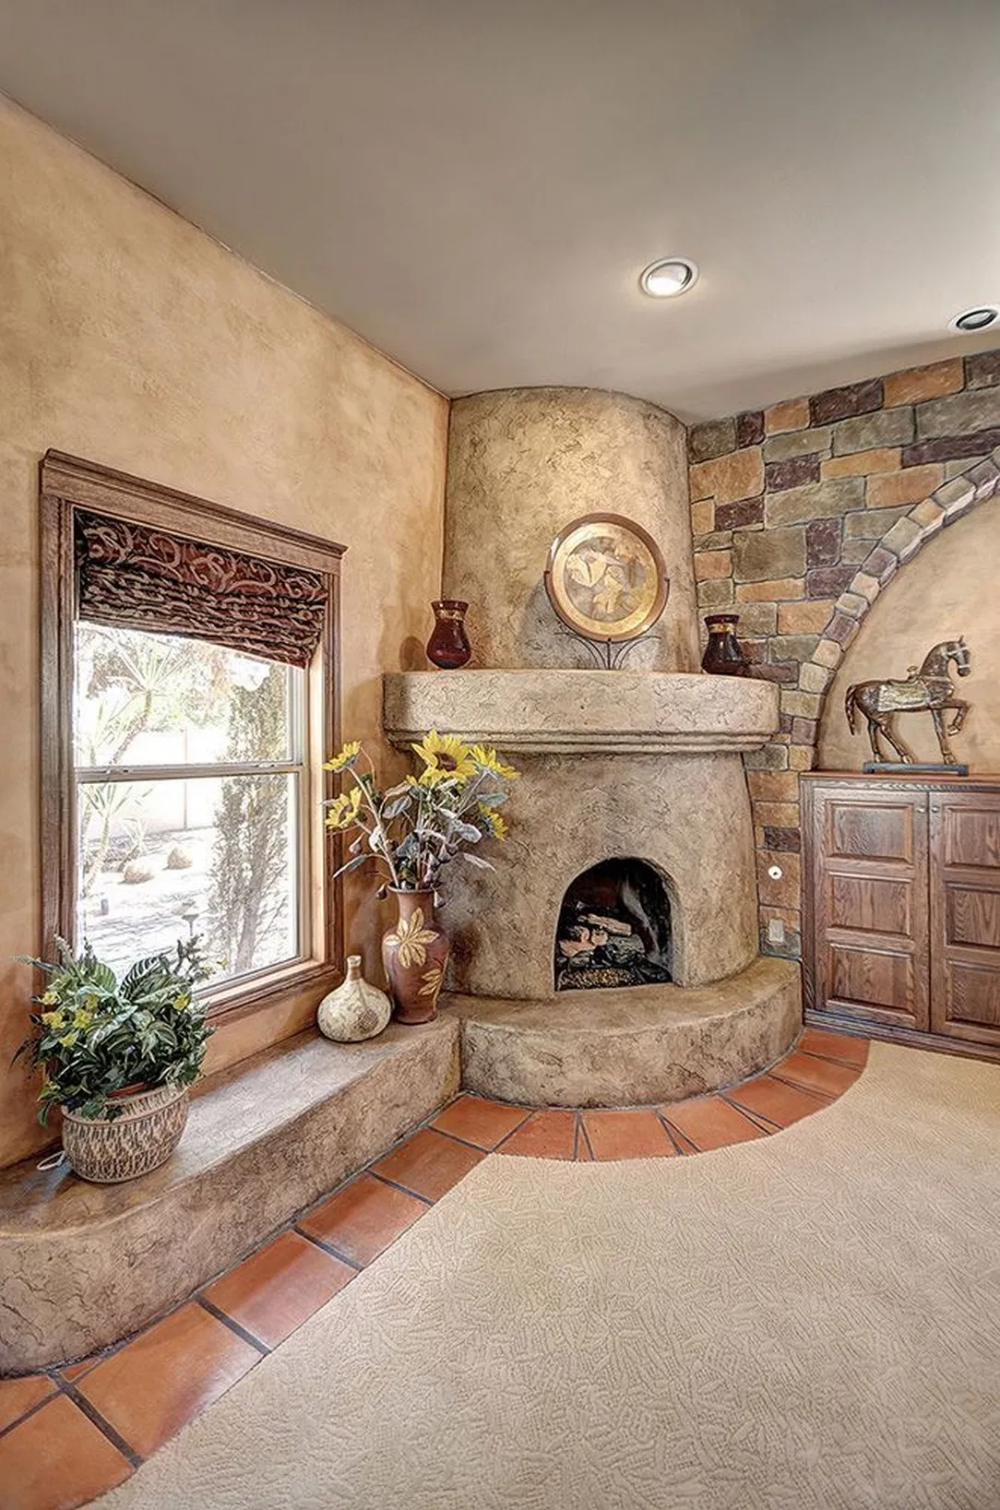 Tour 15 Real Storybook Cottage In 2020 Rustic House Mexican Home Decor Southwestern Home